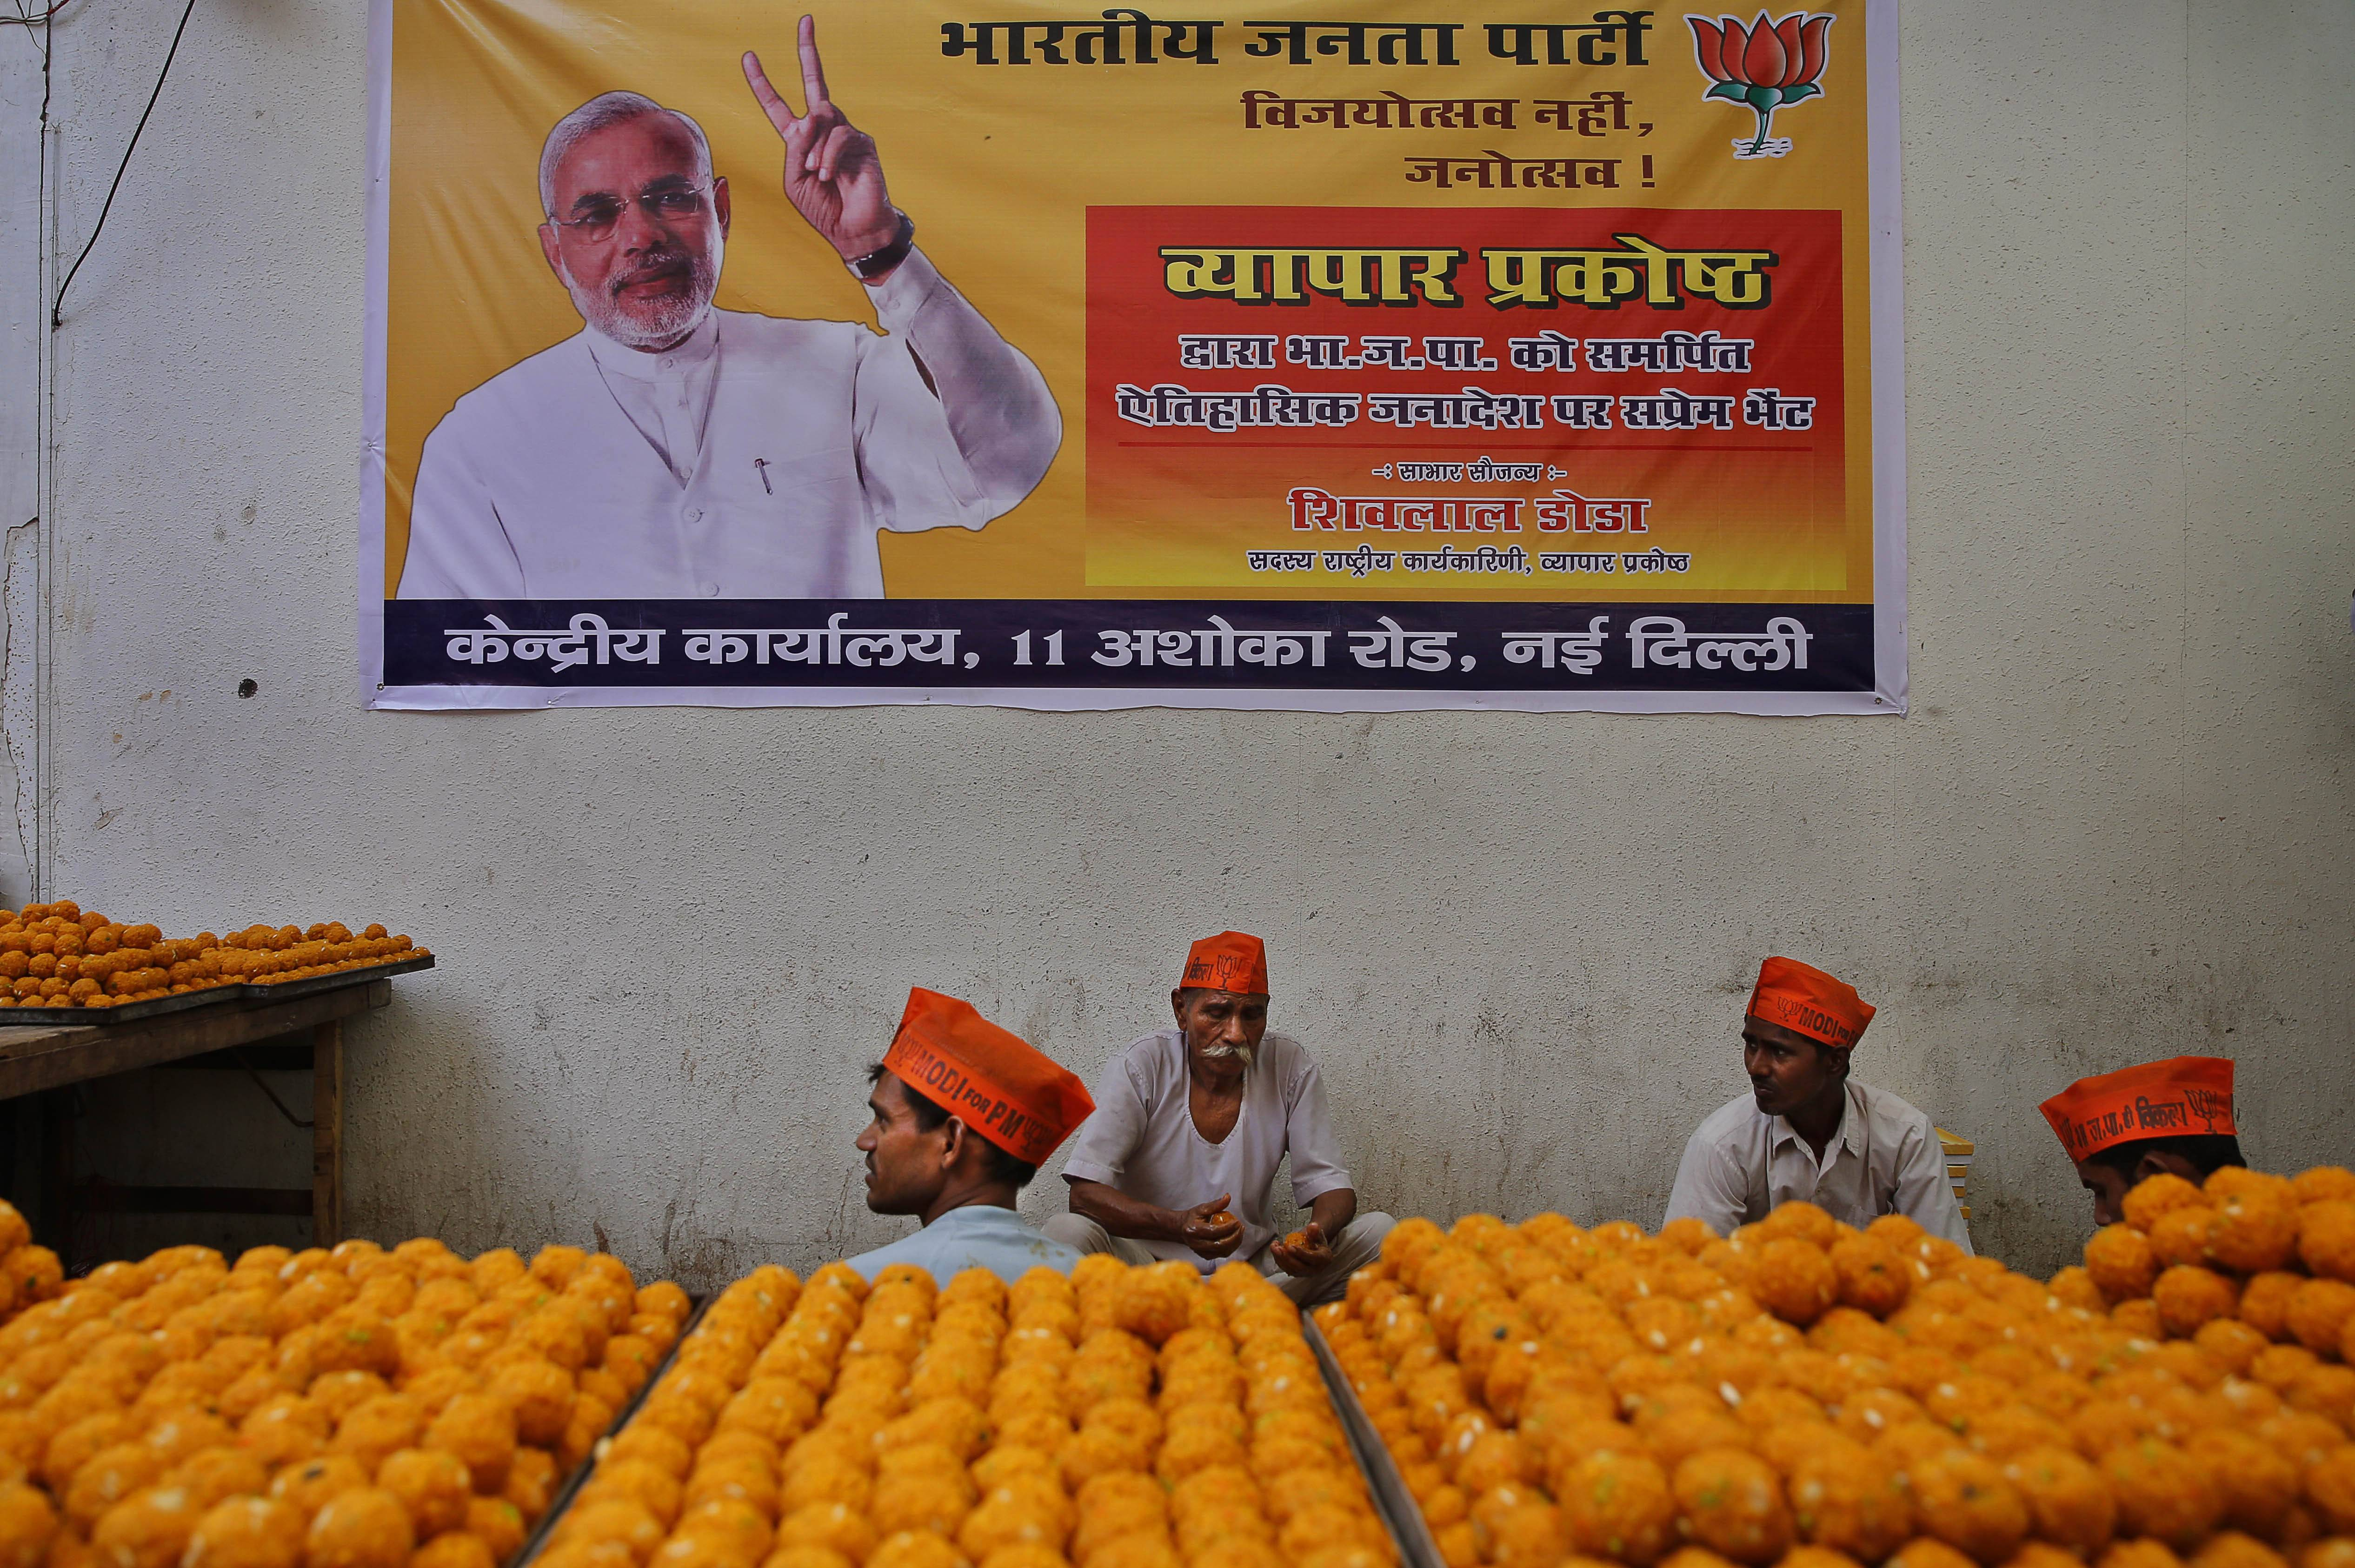 Indian workers prepare sweets Thursday, anticipating election victory for the Bharatiya Janata Party (BJP) at the party's headquarters, in New Delhi, India.